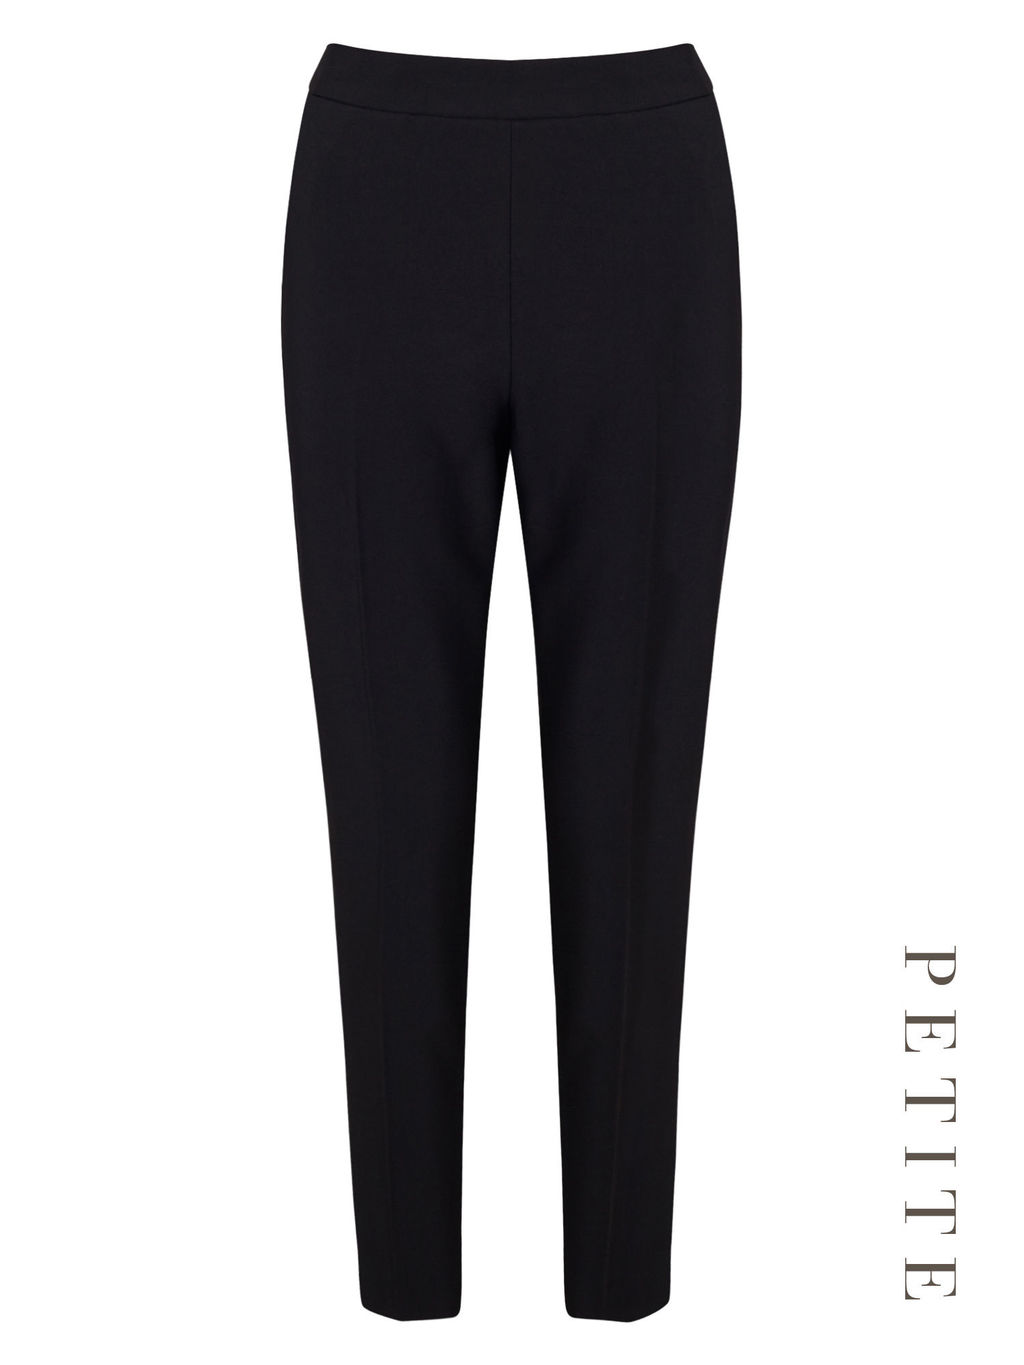 Petite Curved Hem Trousers - length: standard; pattern: plain; waist: mid/regular rise; predominant colour: black; occasions: casual, creative work; fibres: polyester/polyamide - stretch; fit: slim leg; pattern type: fabric; texture group: woven light midweight; style: standard; season: s/s 2016; wardrobe: basic